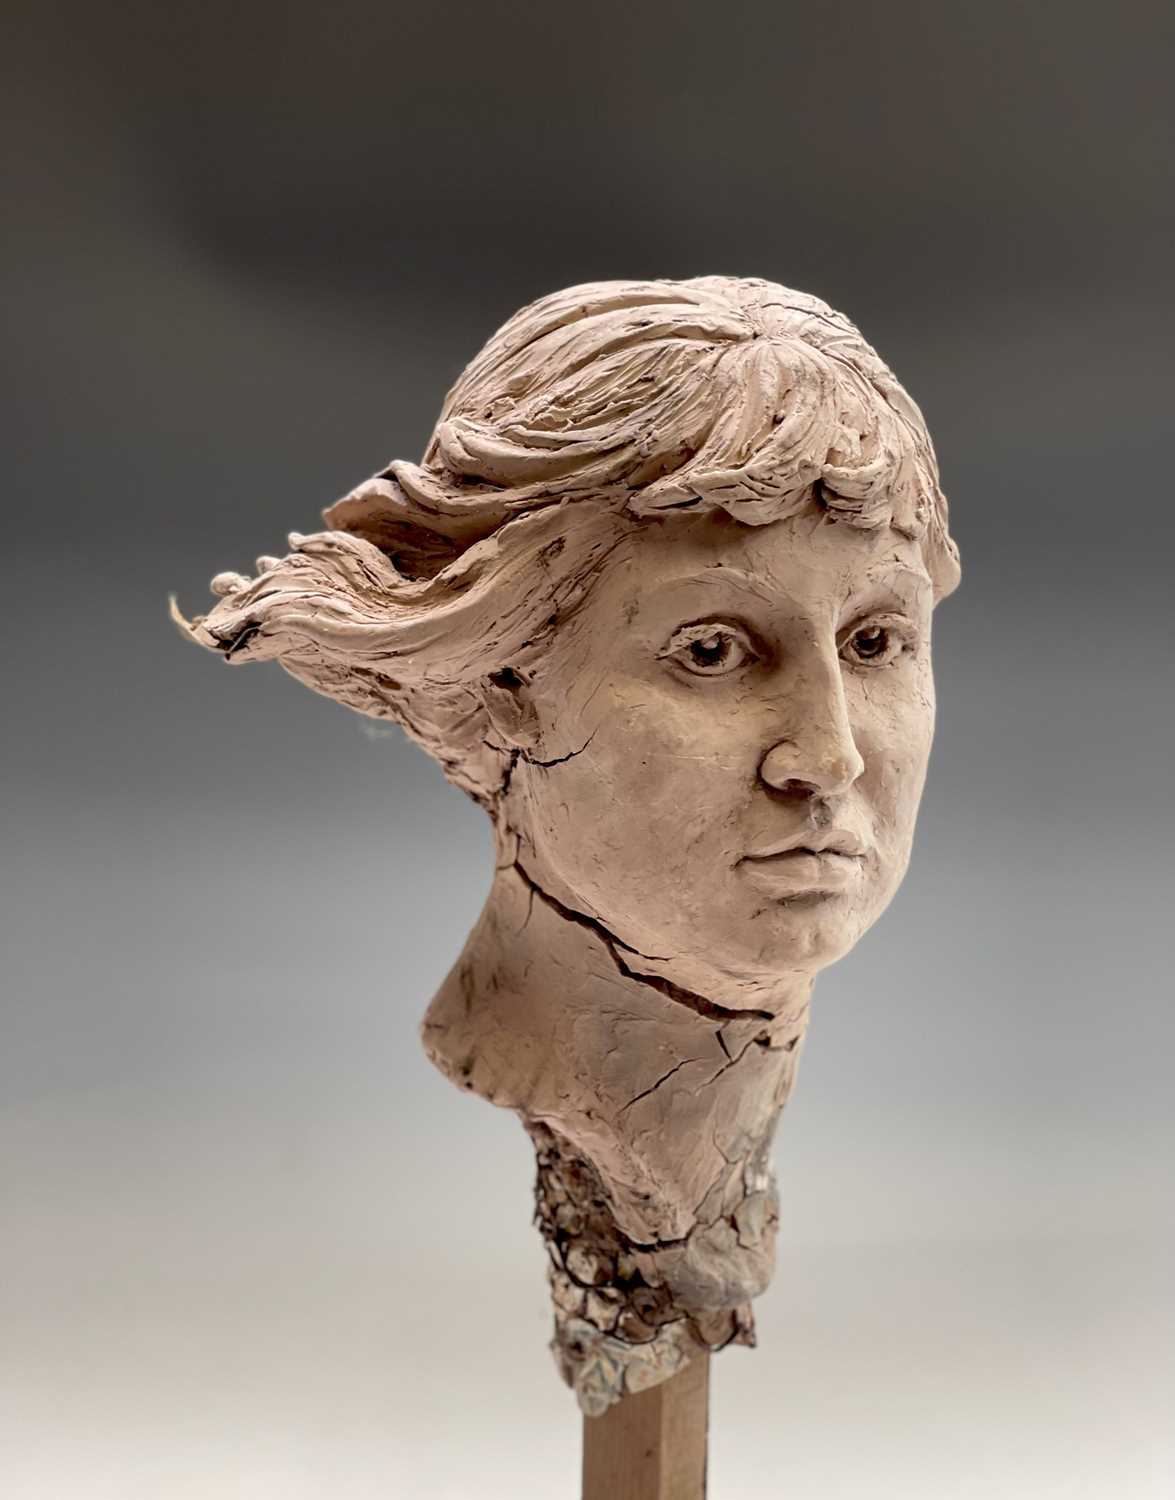 Alec WILES (1924)Female Head Clay sculpture Height 58cm - Image 5 of 17